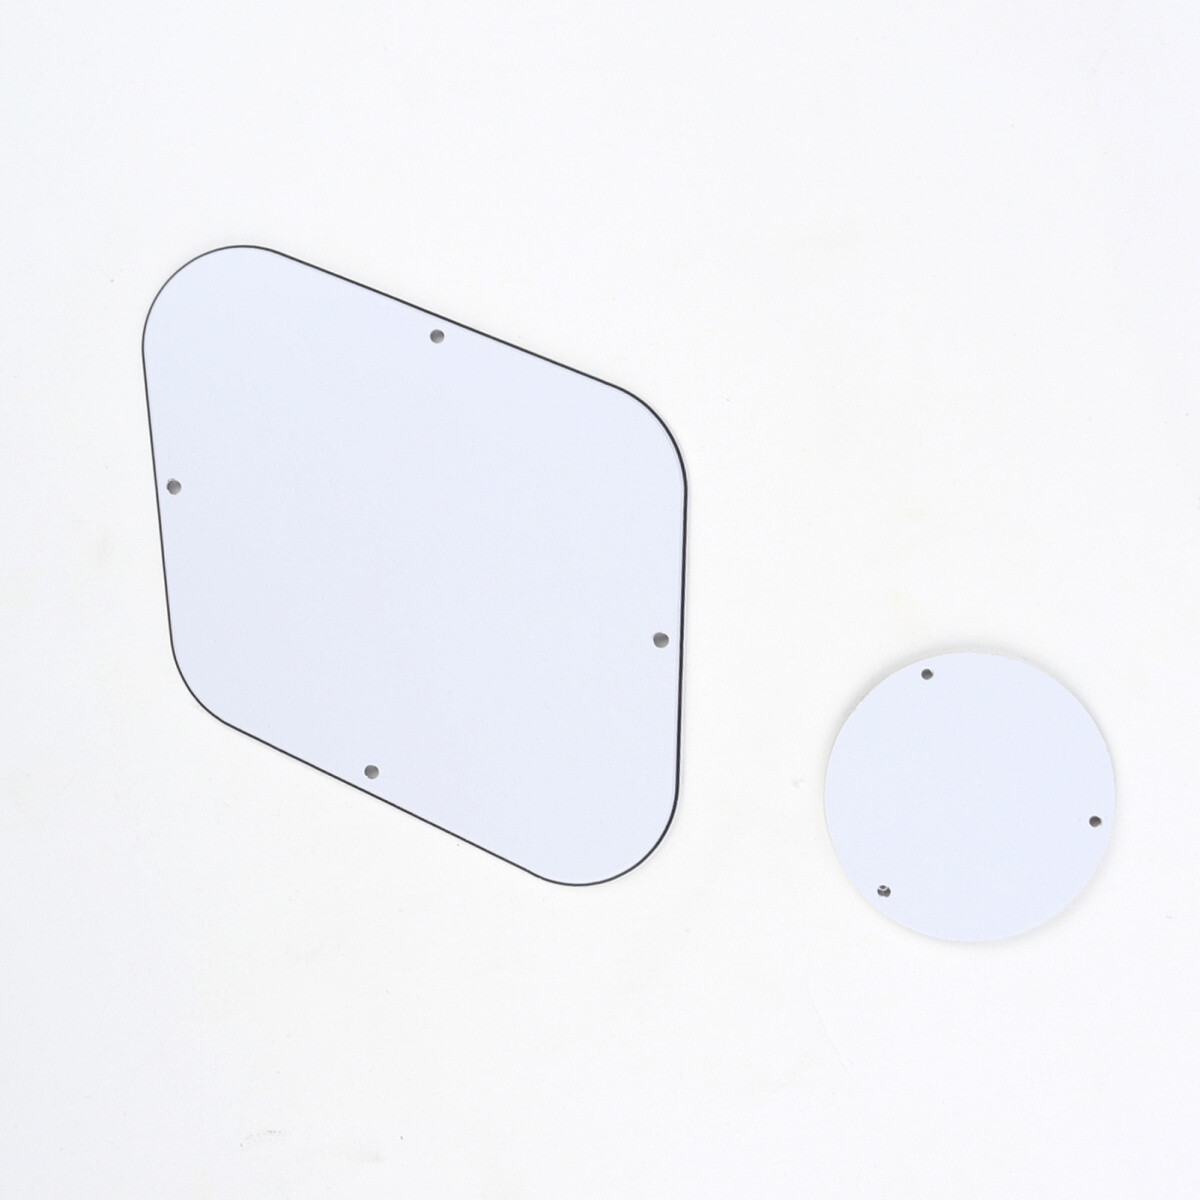 Brio Les Paul Backplate & Switch Cover 3 Ply White